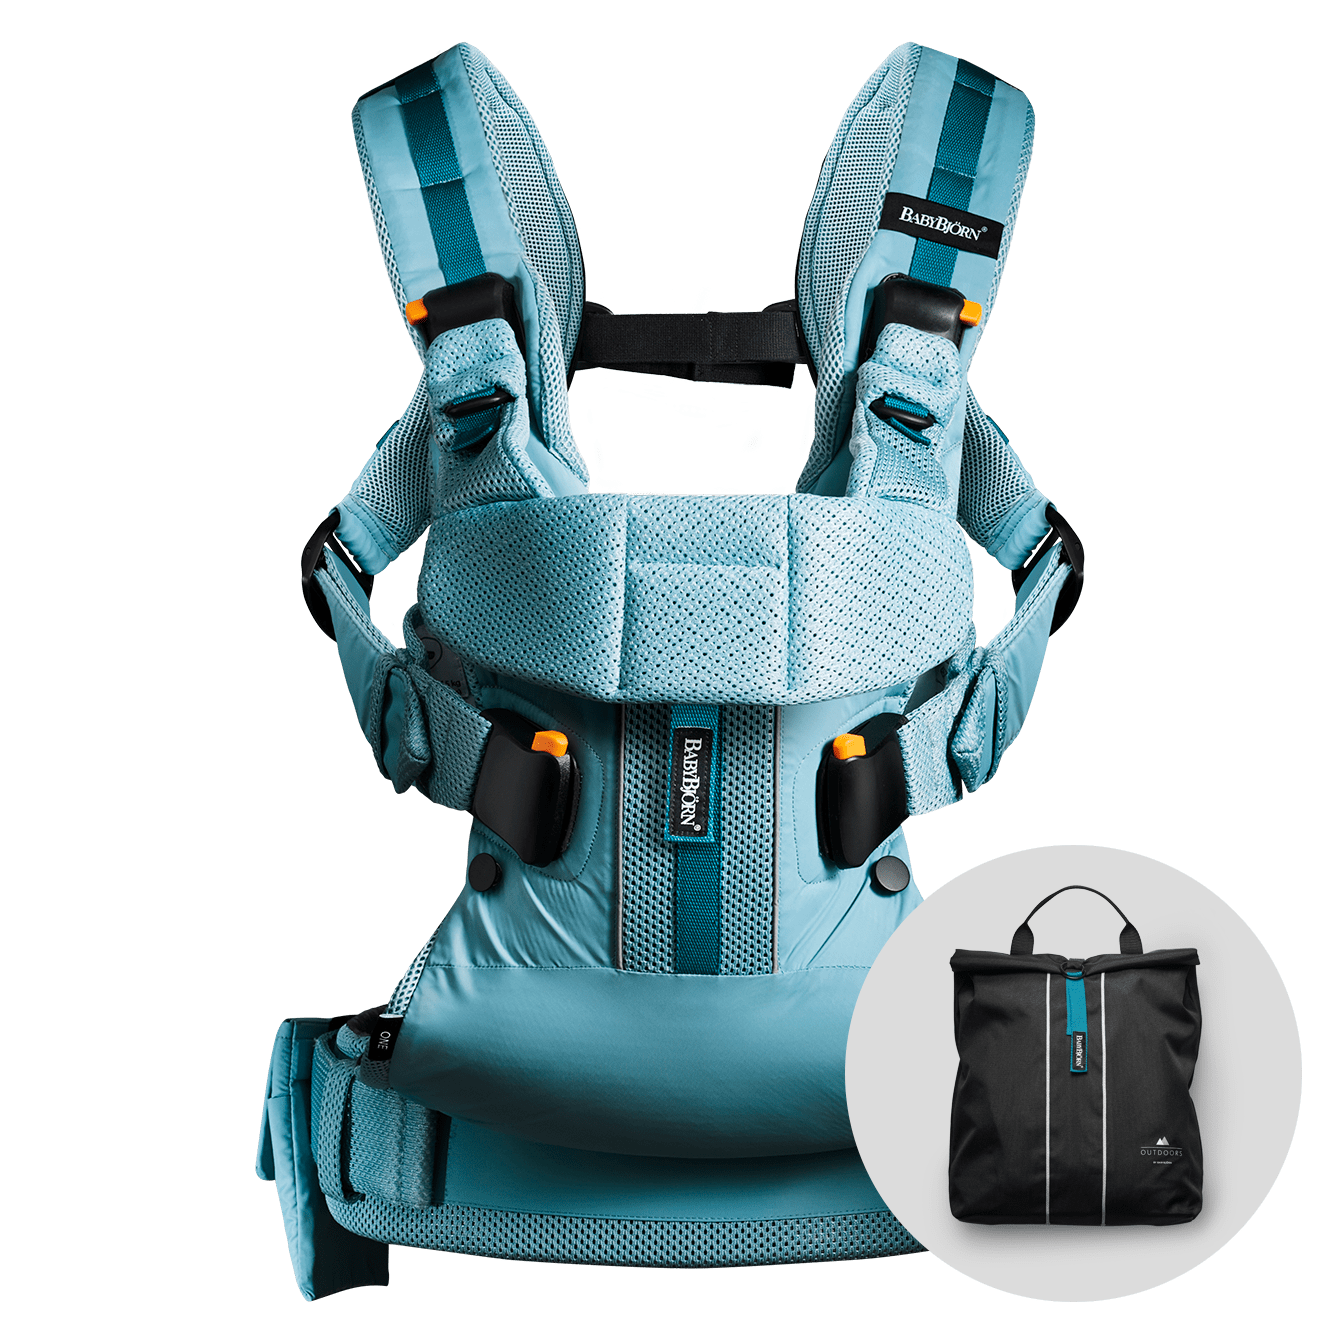 BABYBJÖRN Baby Carrier One Outdoors in turquoise, perfect for an active life.